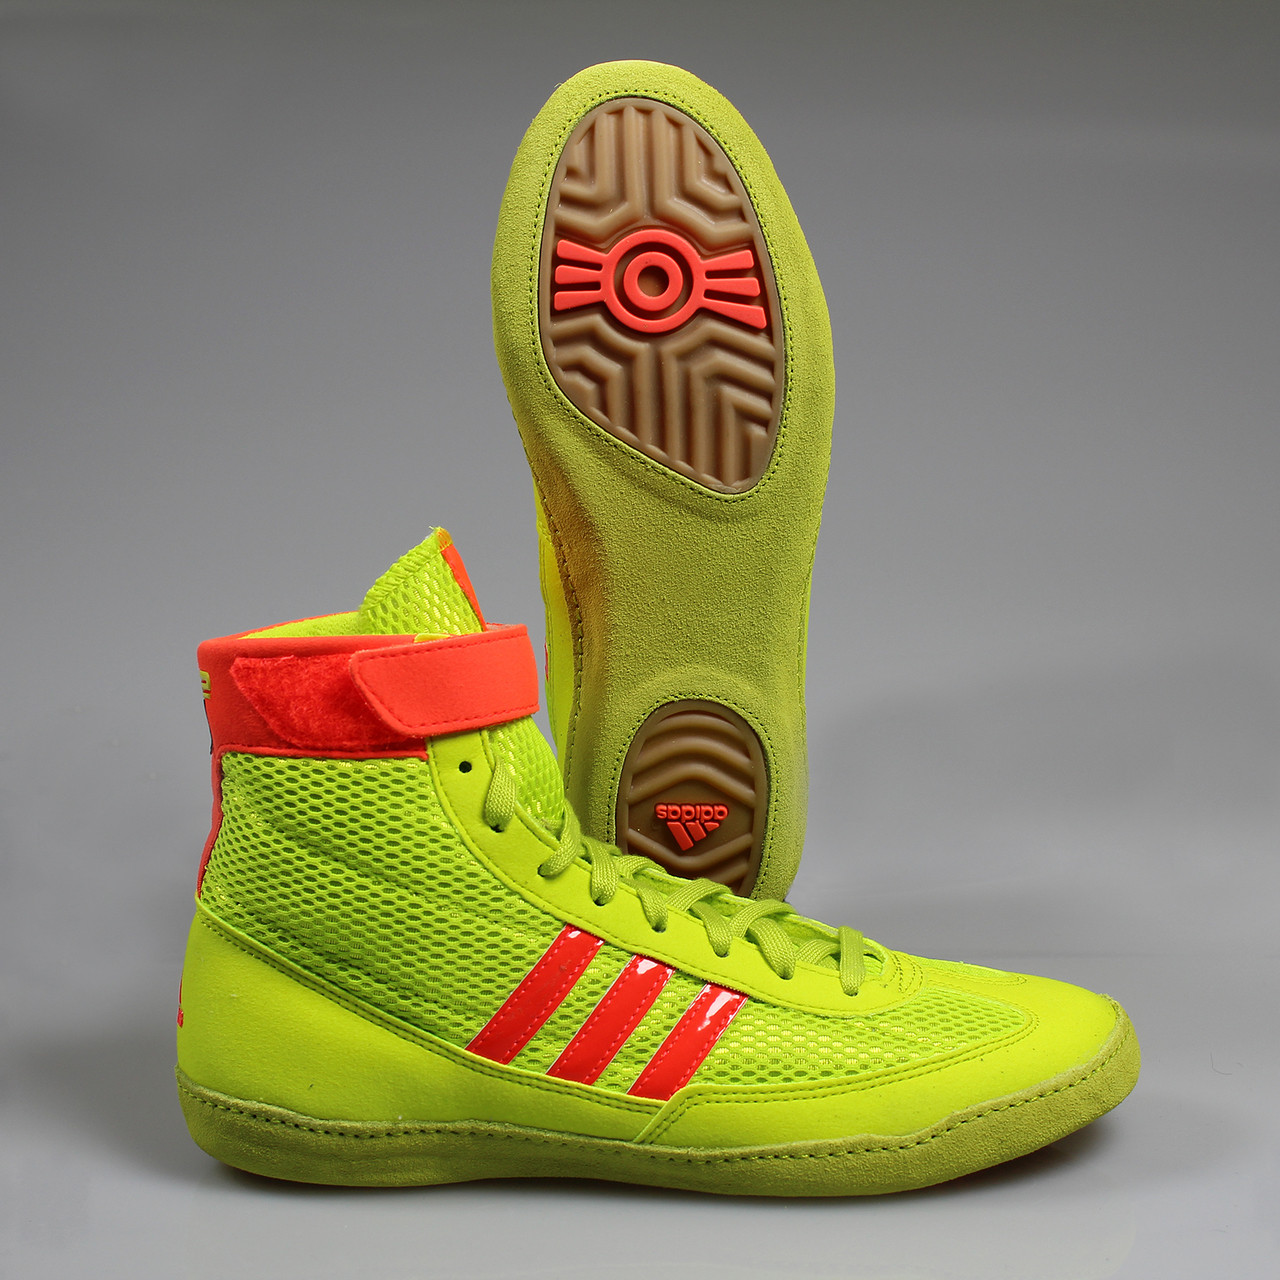 Adidas Combat Speed 4 Wrestling Shoes - Yellow Red Gum